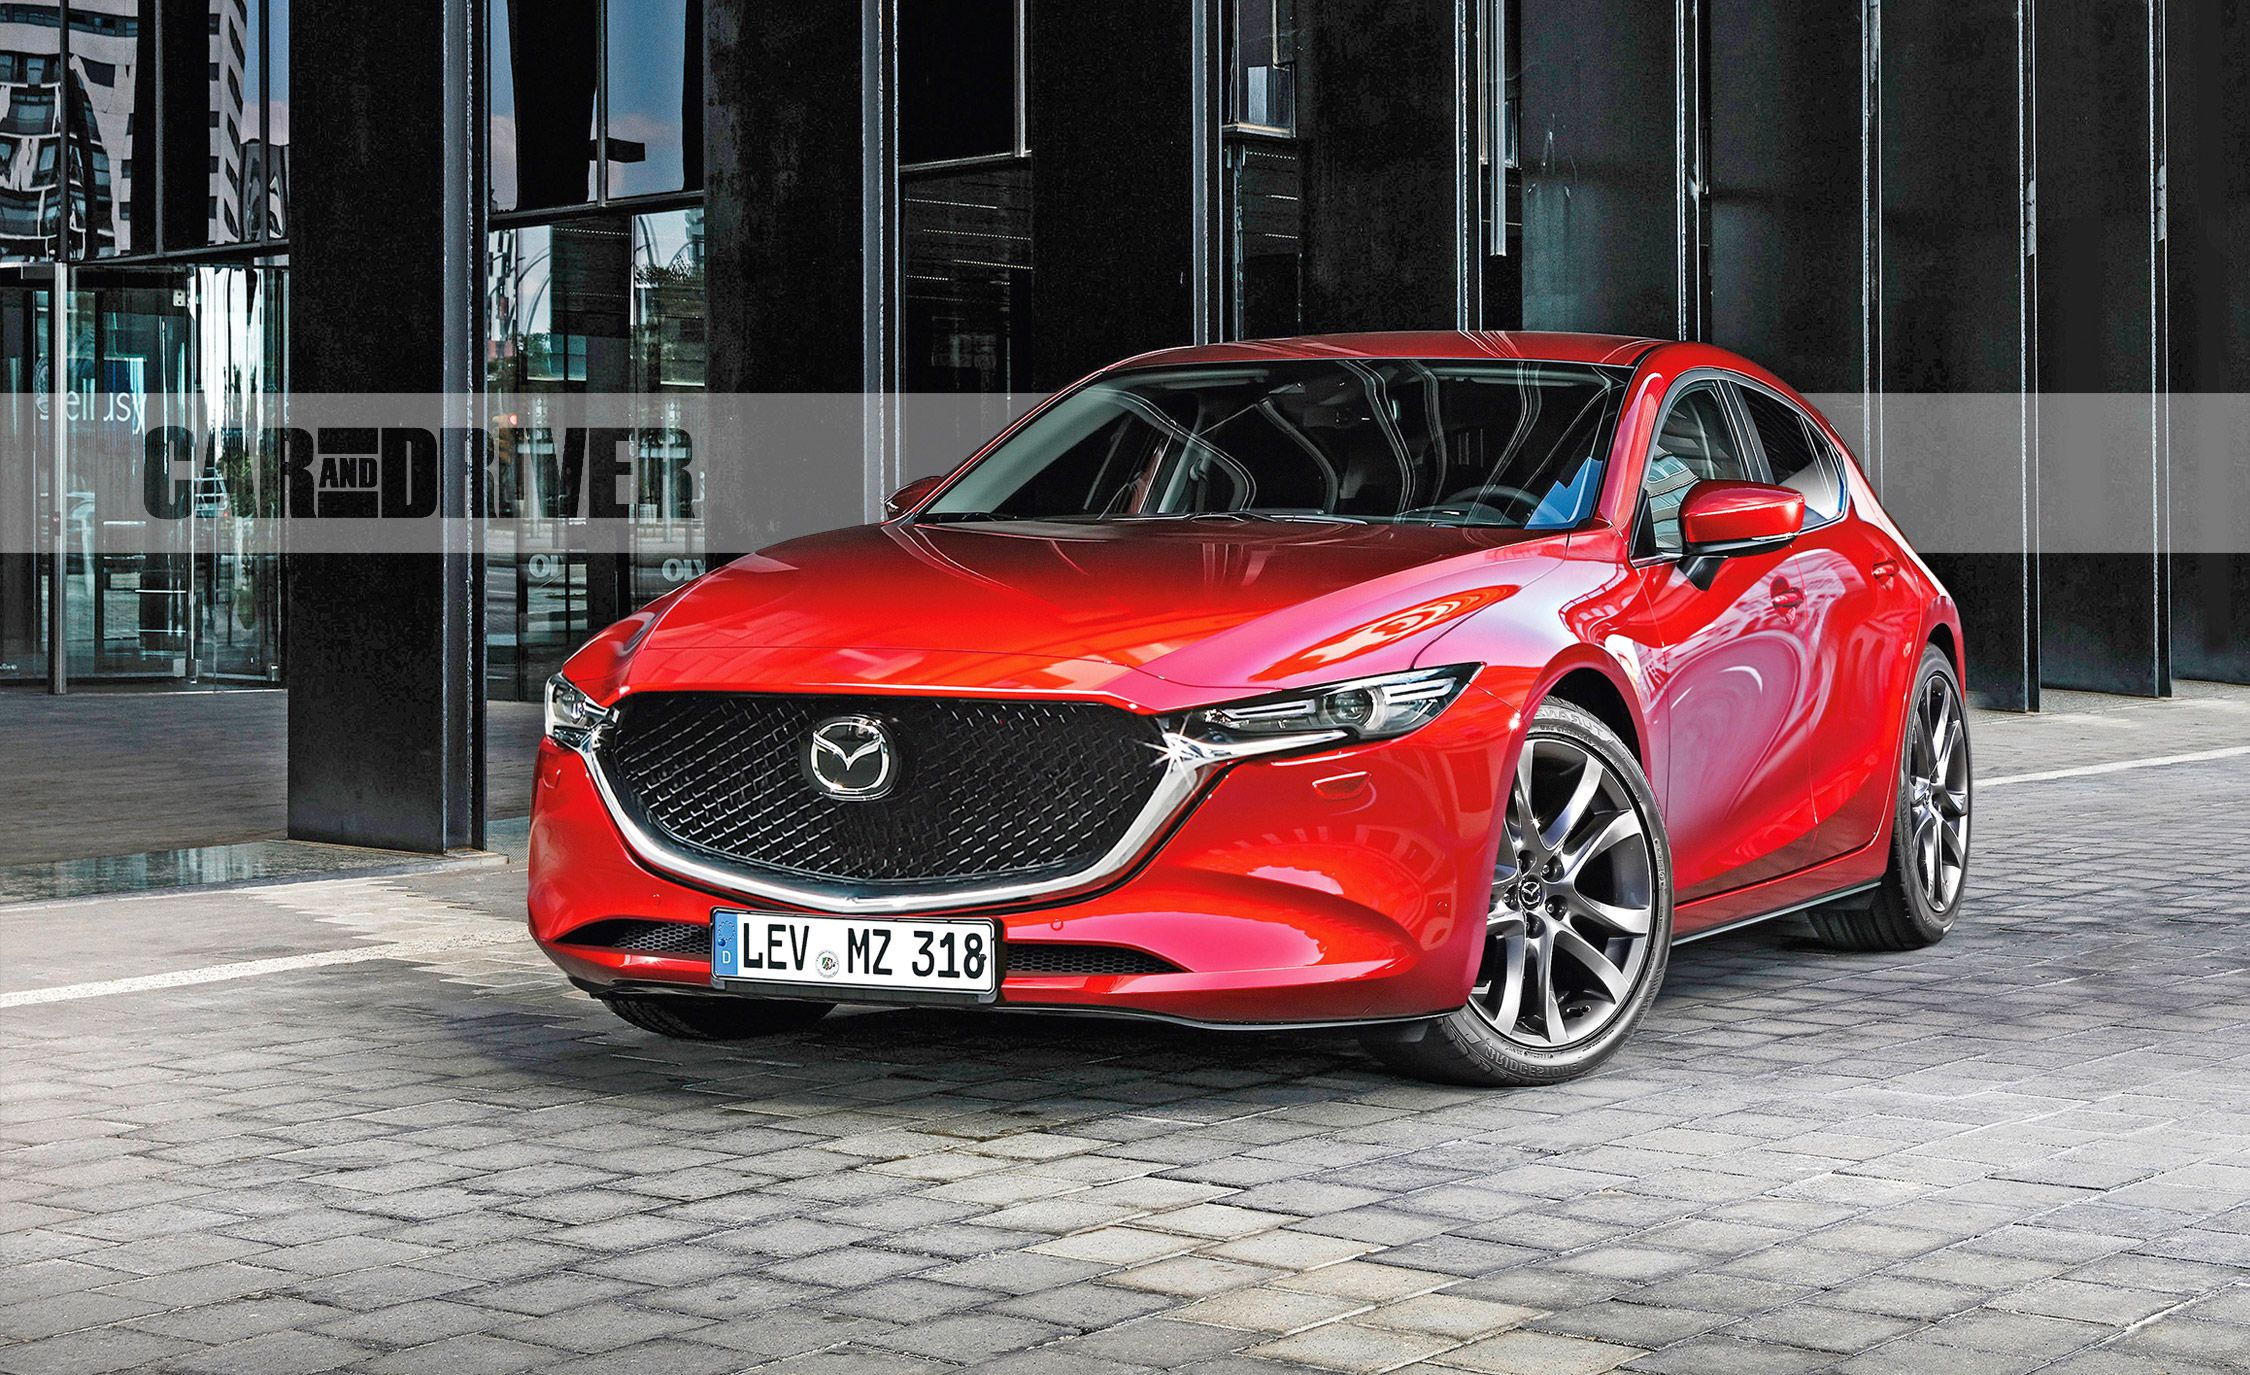 2020 Mazda 3 More Power And Efficiency For One Of Our